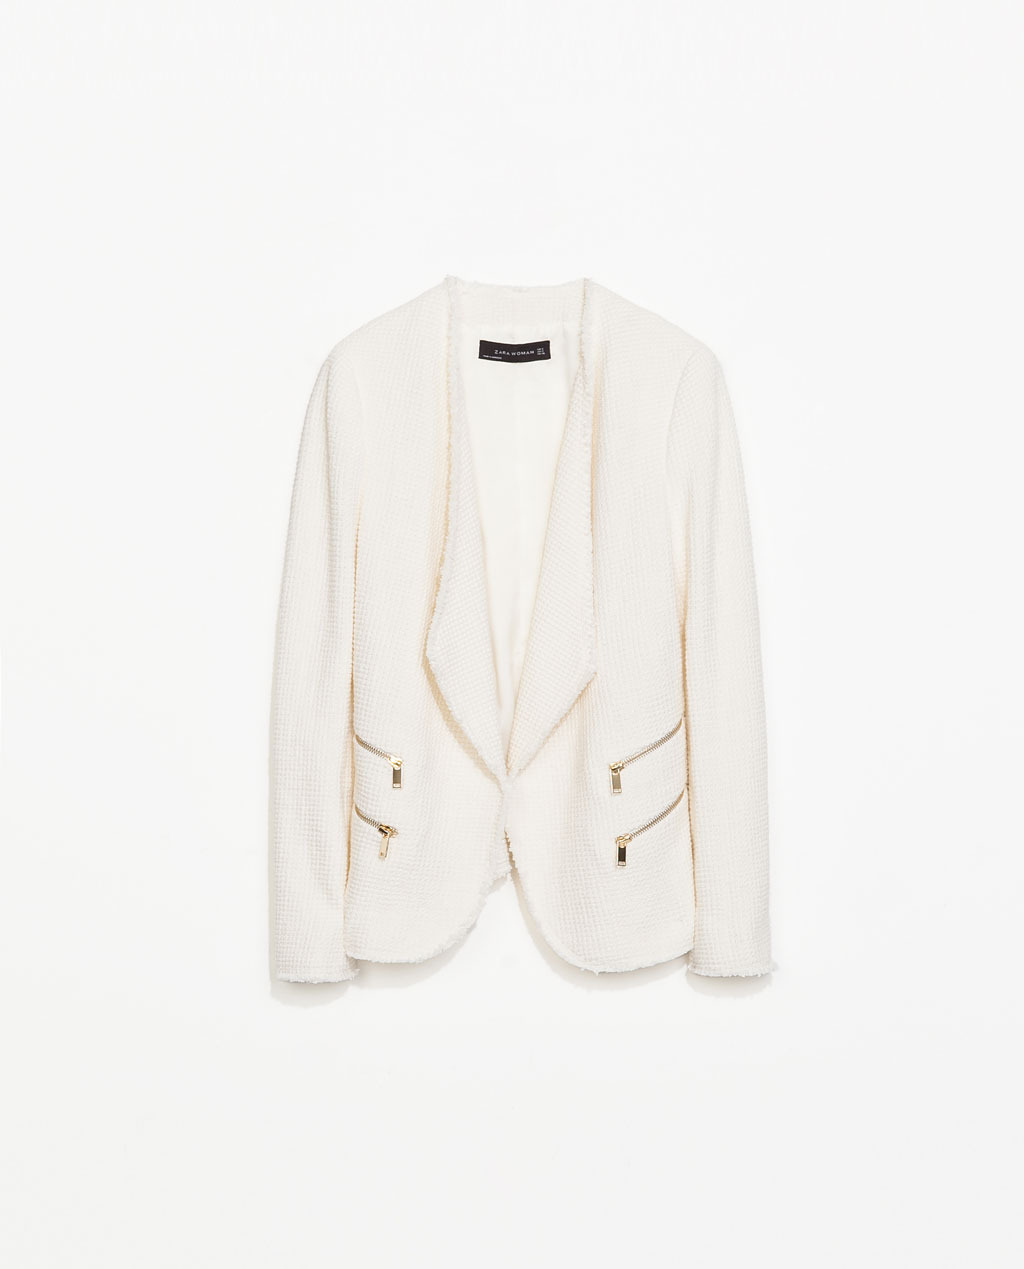 Structured Jacket With Zips - pattern: plain; style: single breasted blazer; collar: shawl/waterfall; predominant colour: ivory/cream; secondary colour: gold; occasions: casual, evening, creative work; length: standard; fit: tailored/fitted; fibres: cotton - stretch; sleeve length: long sleeve; sleeve style: standard; collar break: low/open; pattern type: fabric; texture group: tweed - light/midweight; season: s/s 2014